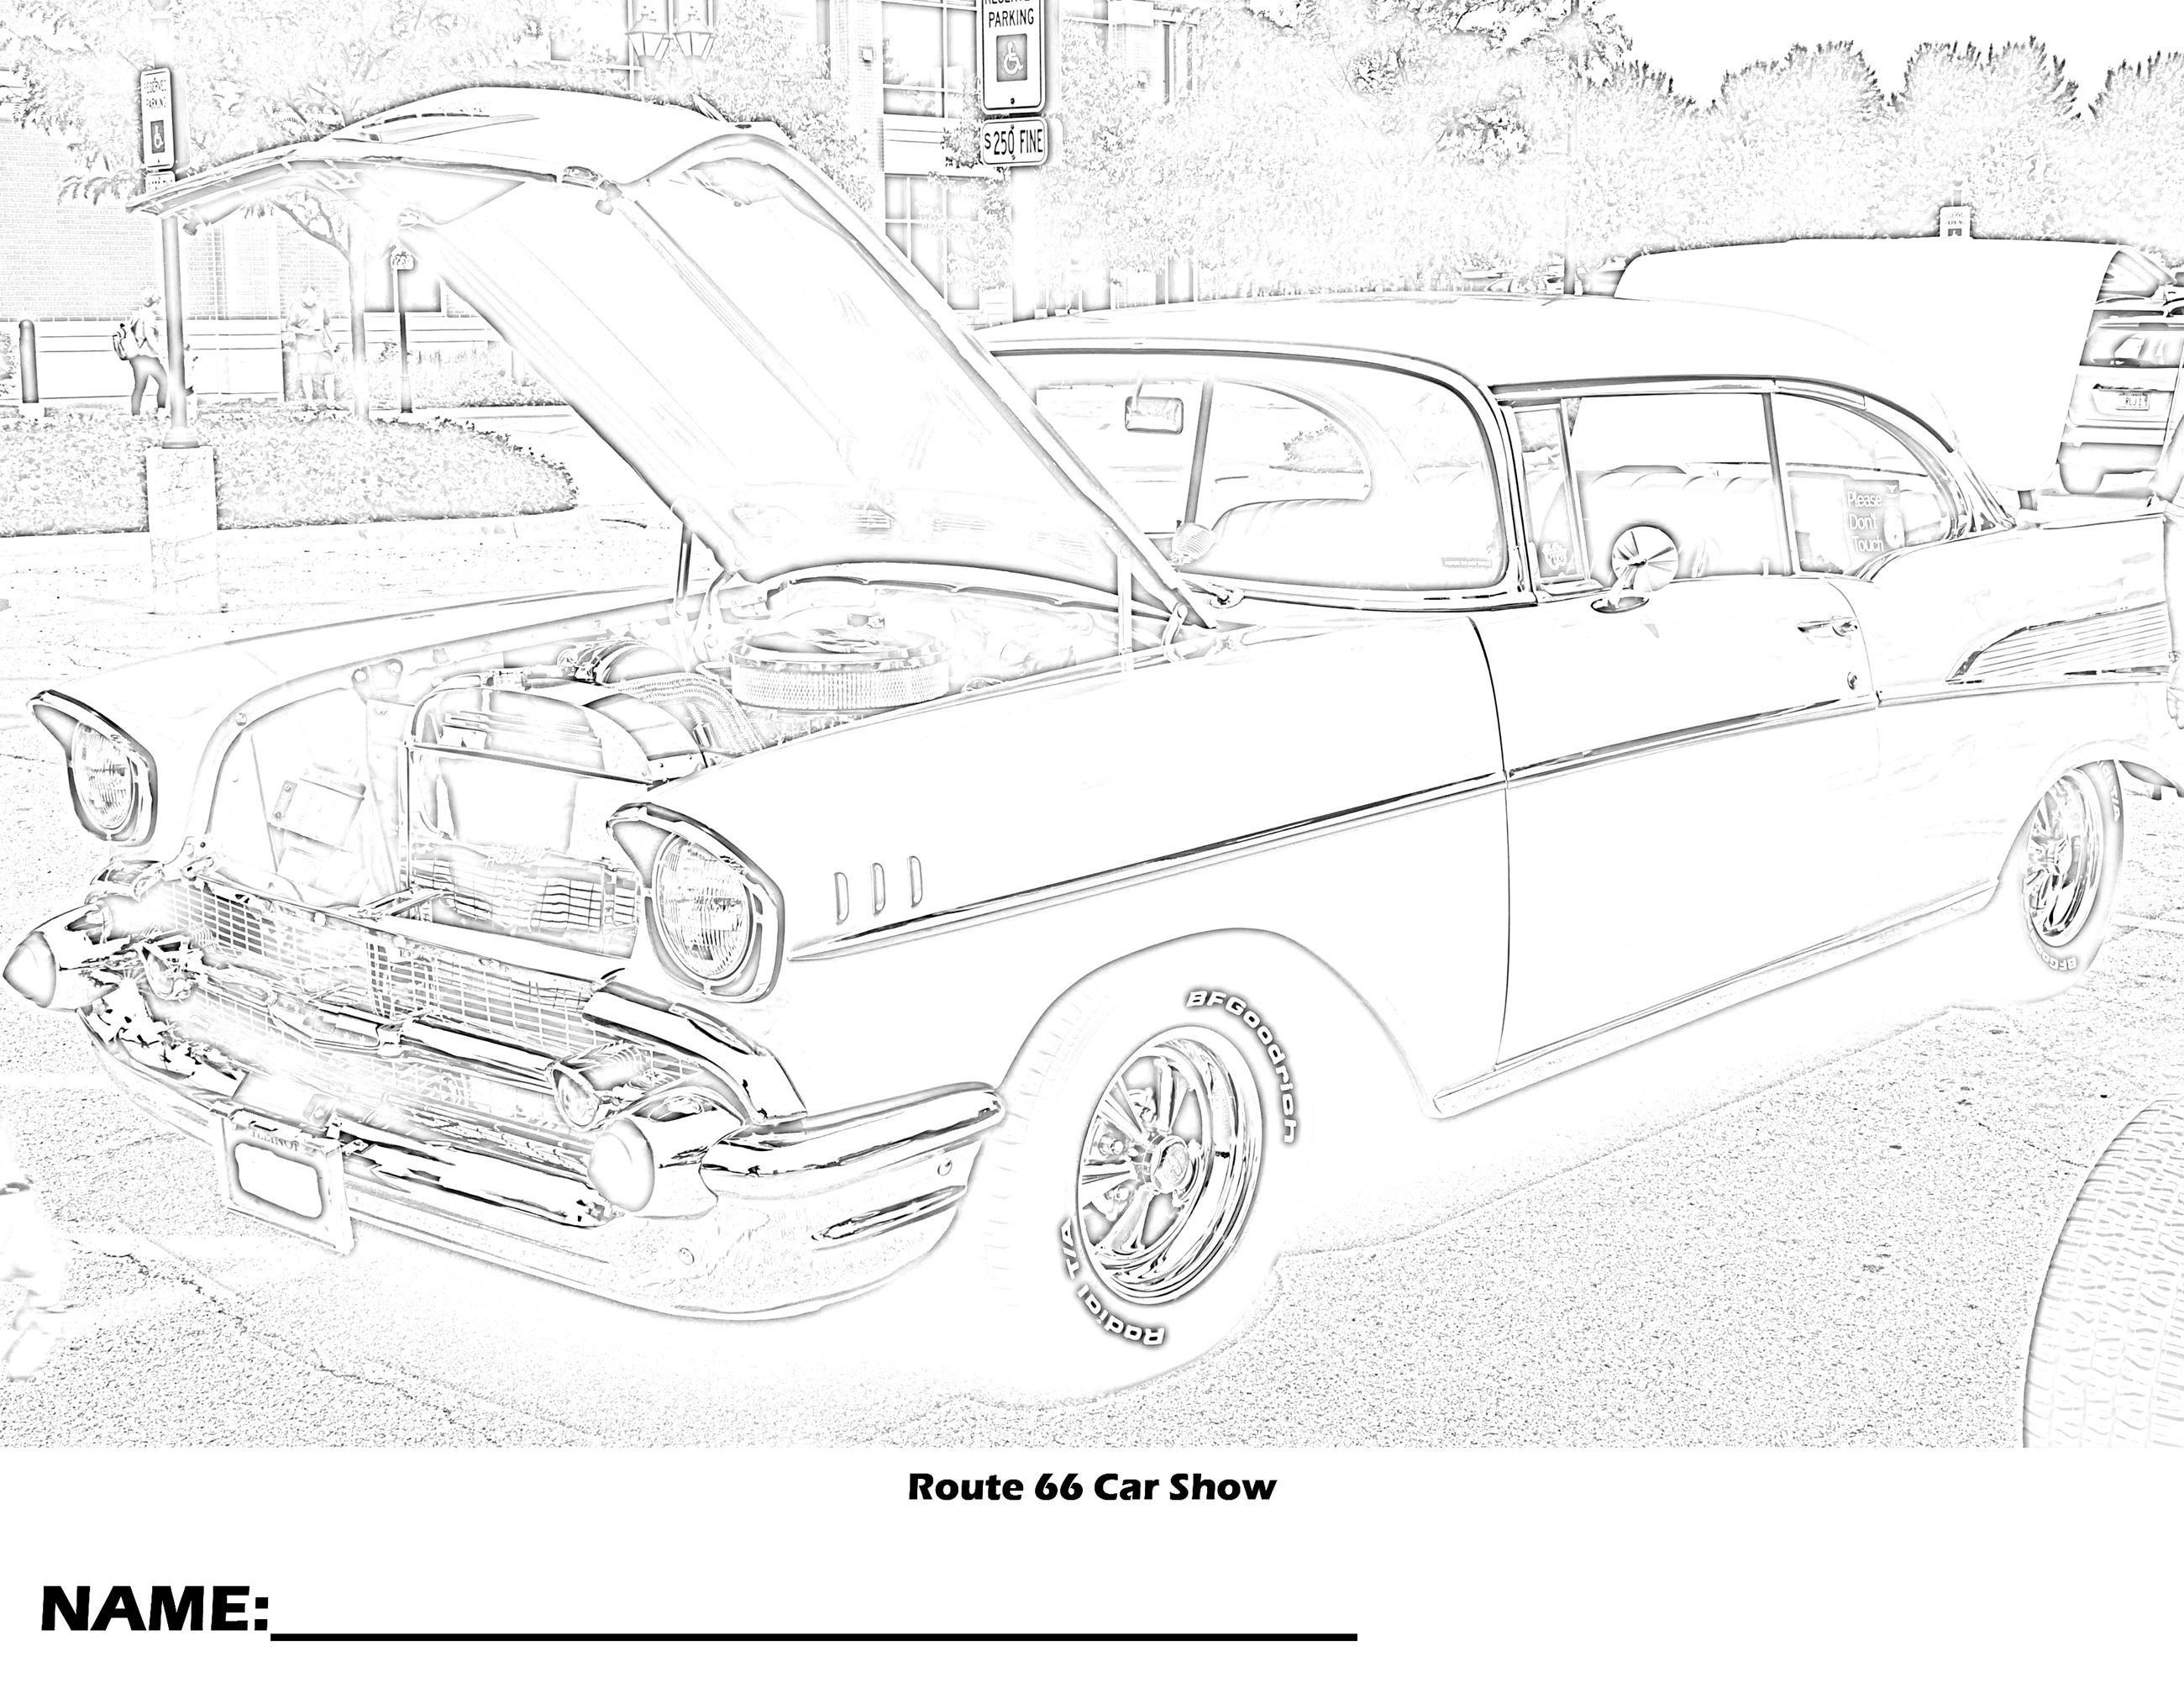 Route 66 Car Show Coloring Page